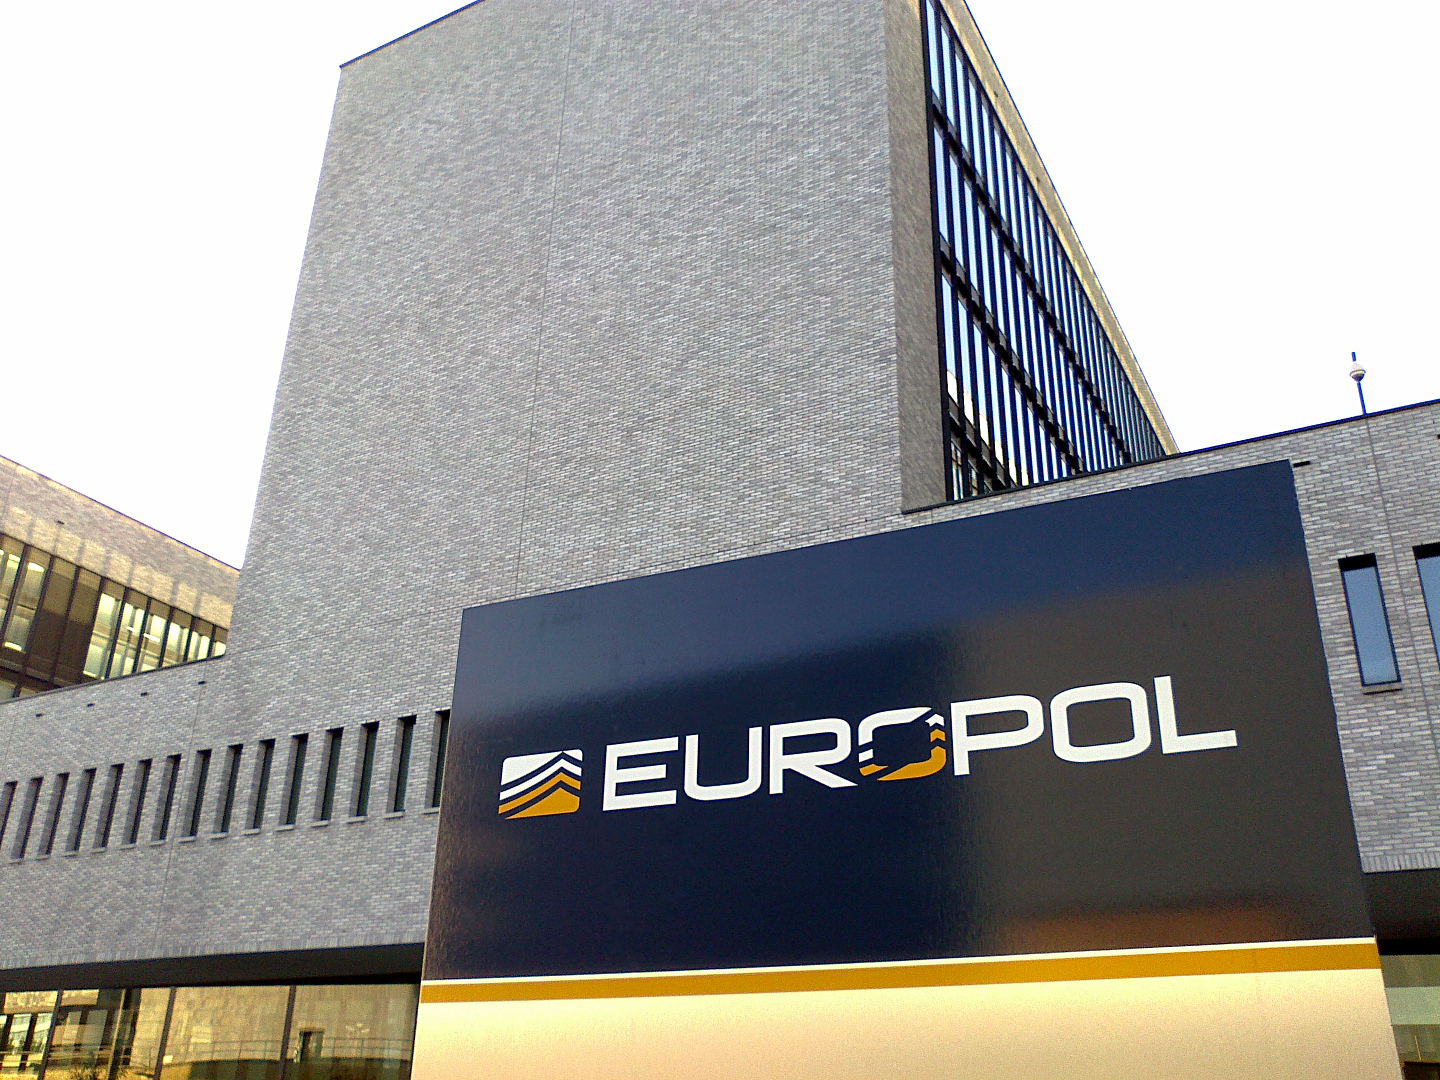 europol_building_the_hague_the_netherlands_-_988